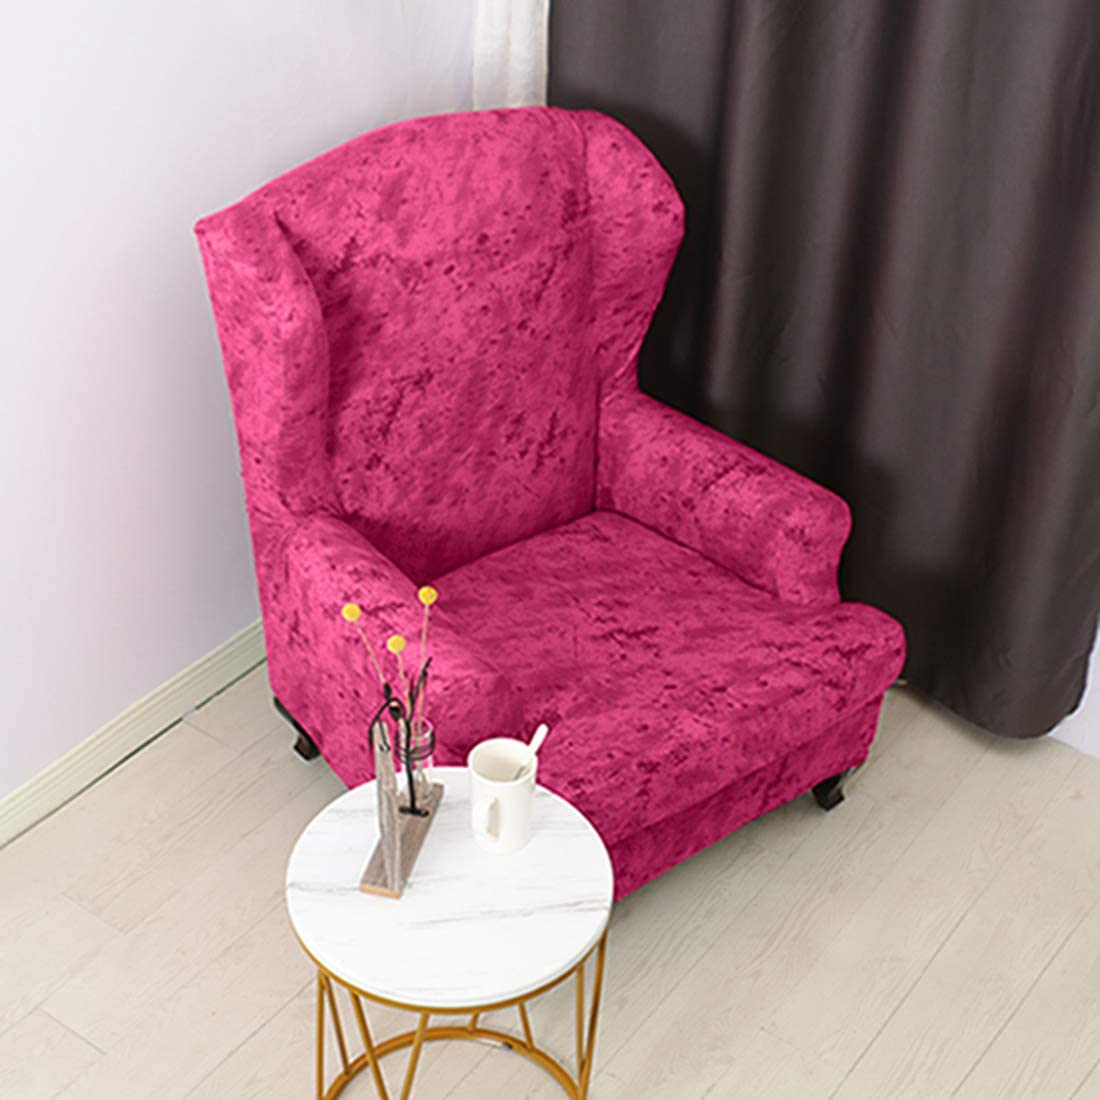 YUENA CARE 2-Piece Wing Chair Slipcovers High Stretch Wingback Armchair Chair Slipcovers Skid Resistance Spandex Furniture Protector Brick Red One Size